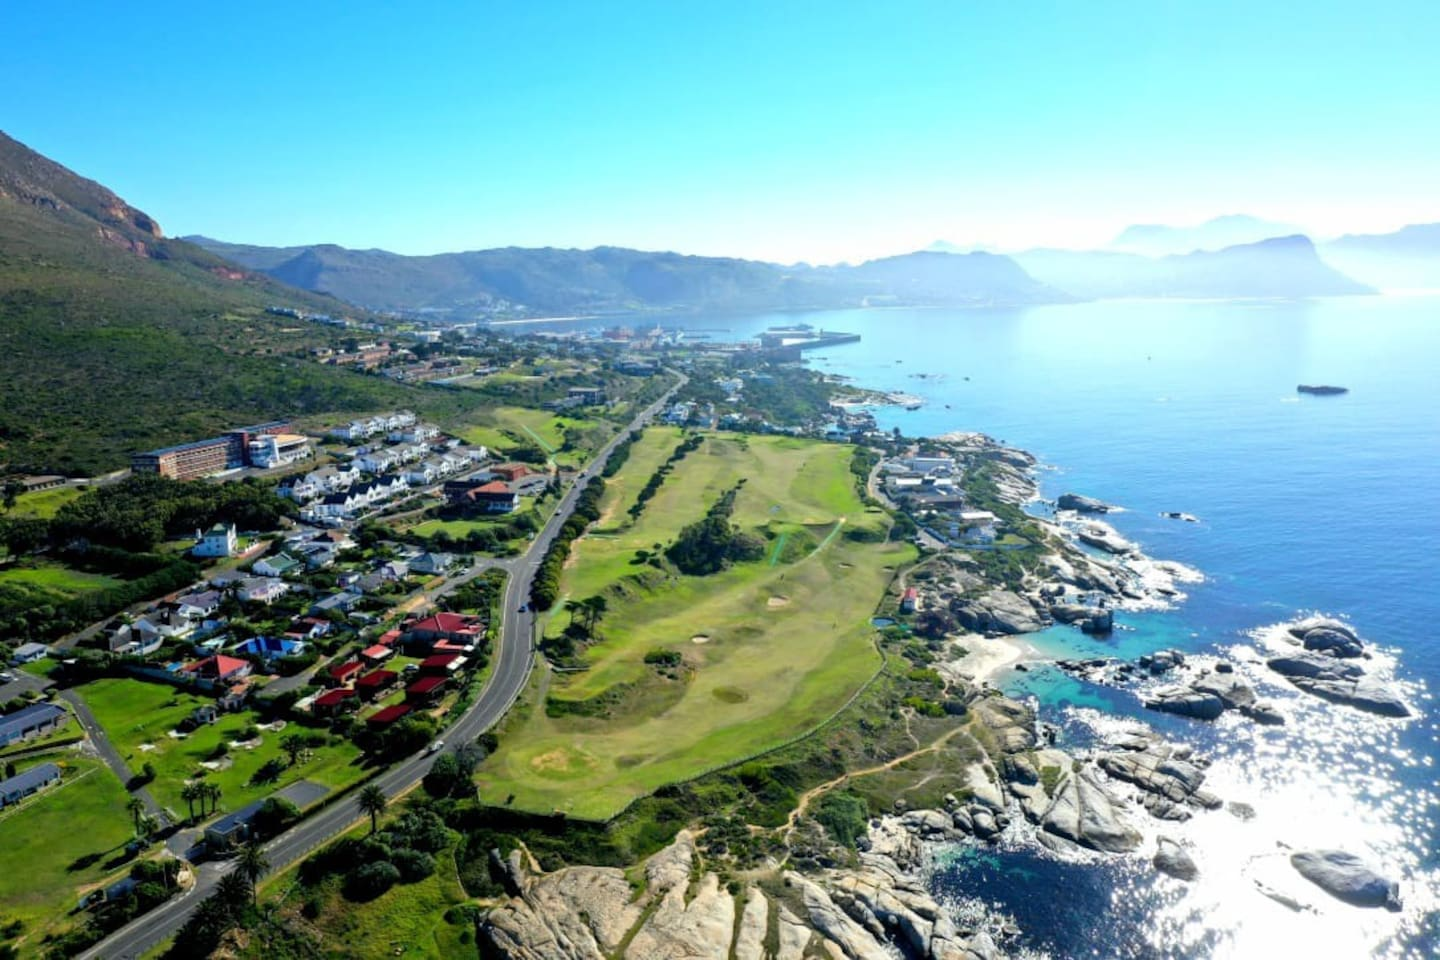 Aerial view of location. Porcupine Walk is immediately behind the big red roof in the photo. The beautiful Simon's Town Golf Course is across the road and the Boulders Penguin Colony is a 5 minute walk away. Windmill Beach clearly visible.